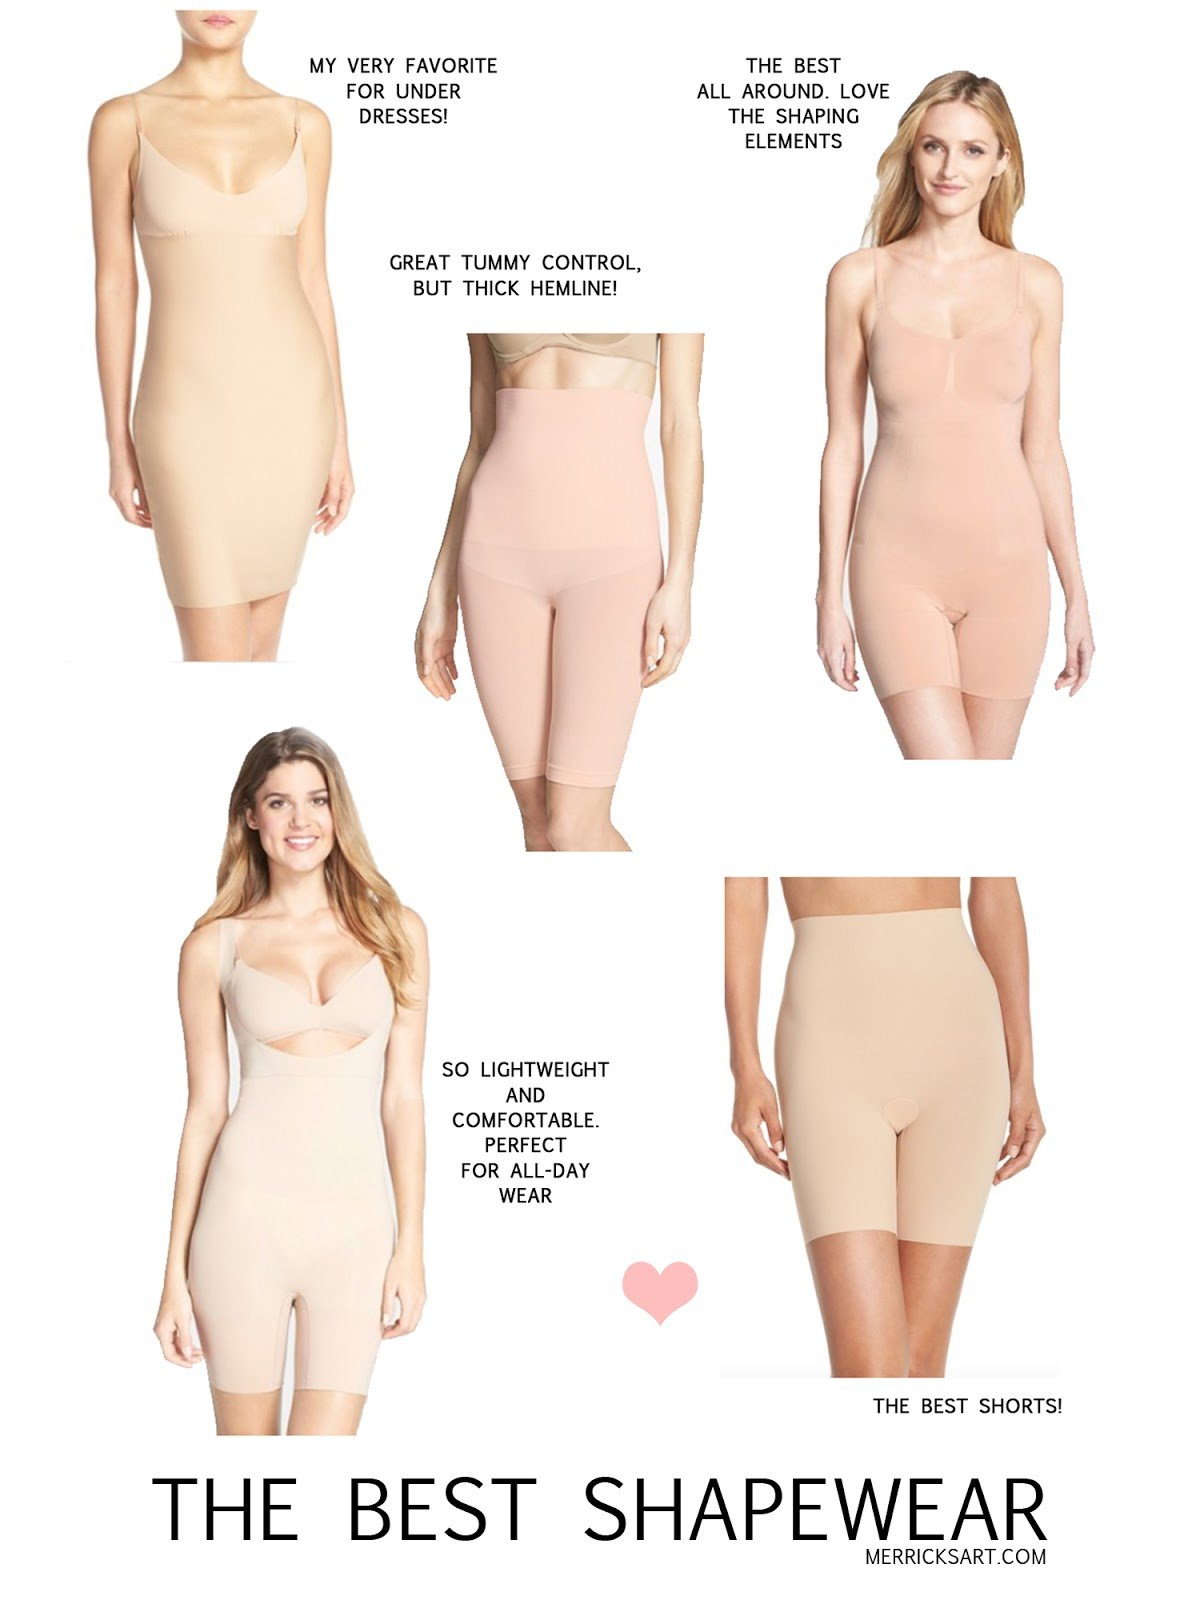 51a87bf3502 BODY CON DRESSES + THE BEST SHAPEWEAR | Merrick's Art | Merrick's Art